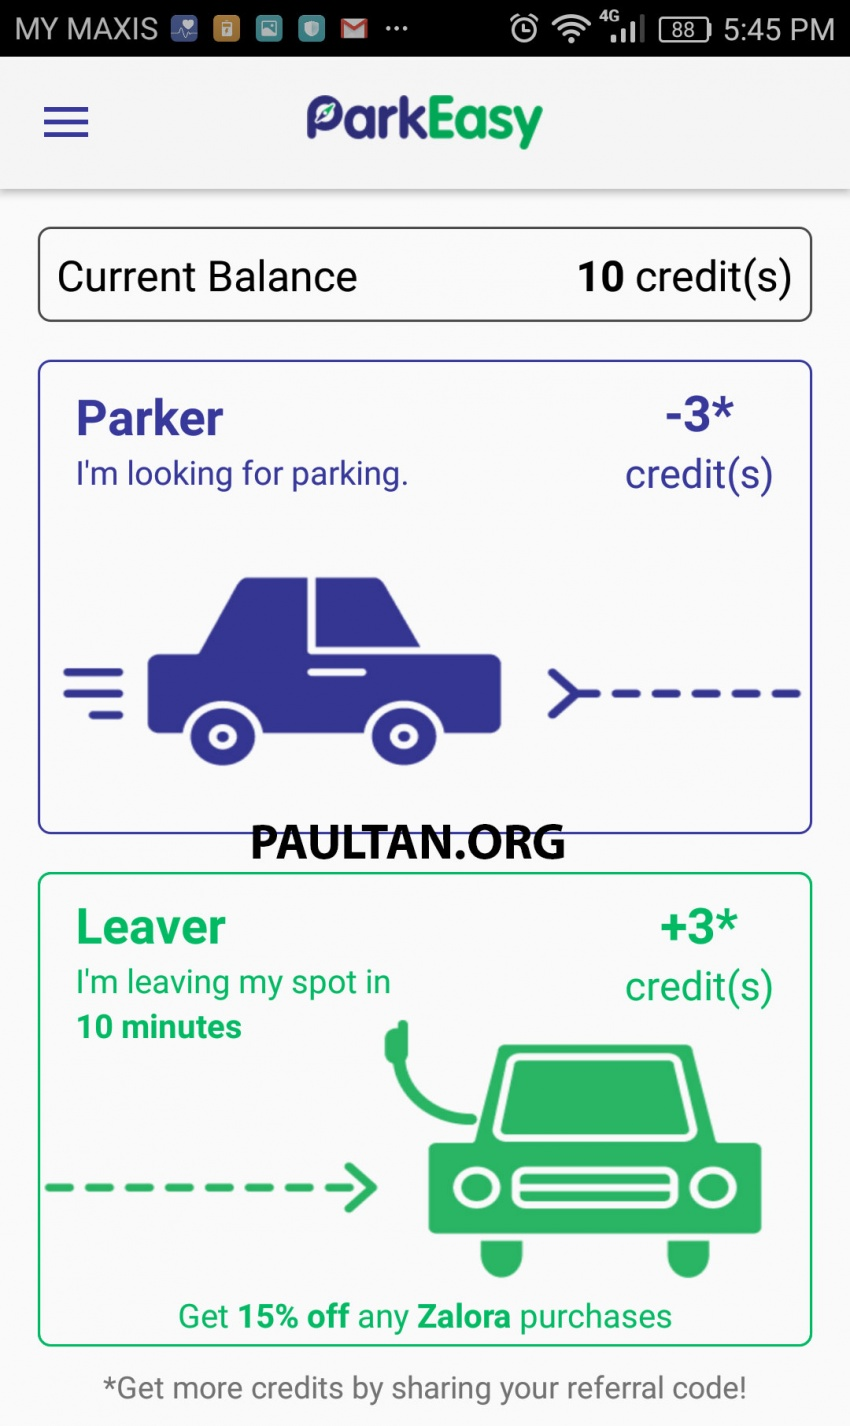 ParkEasy smartphone app aims to ease parking hassle Image #557657